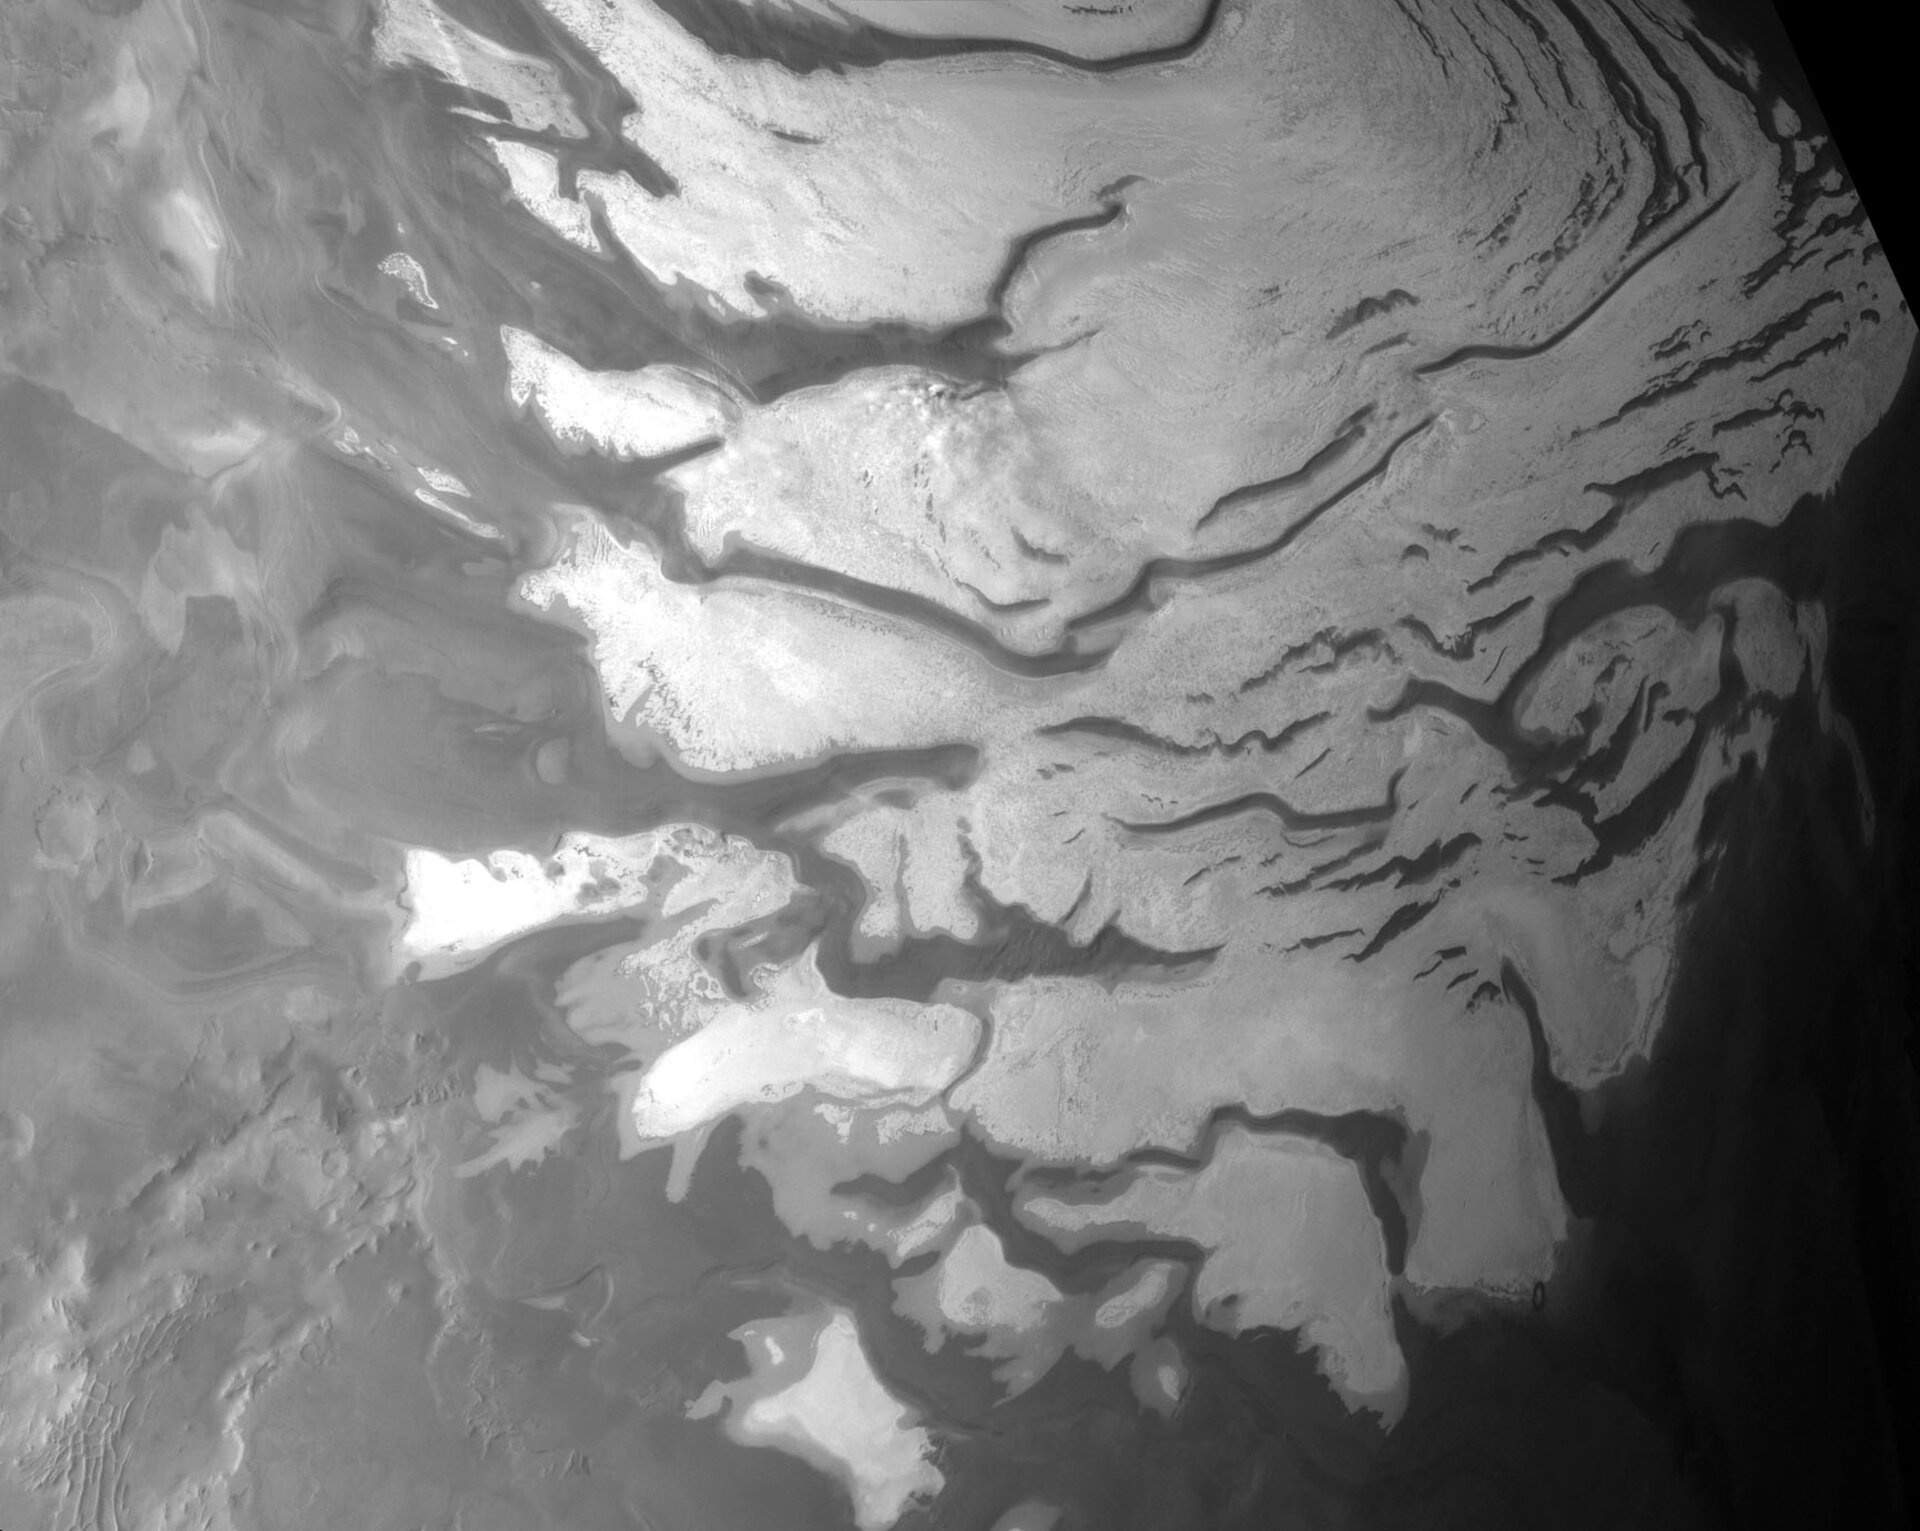 HRSC partial view of Martian south pole where OMEGA found water ice